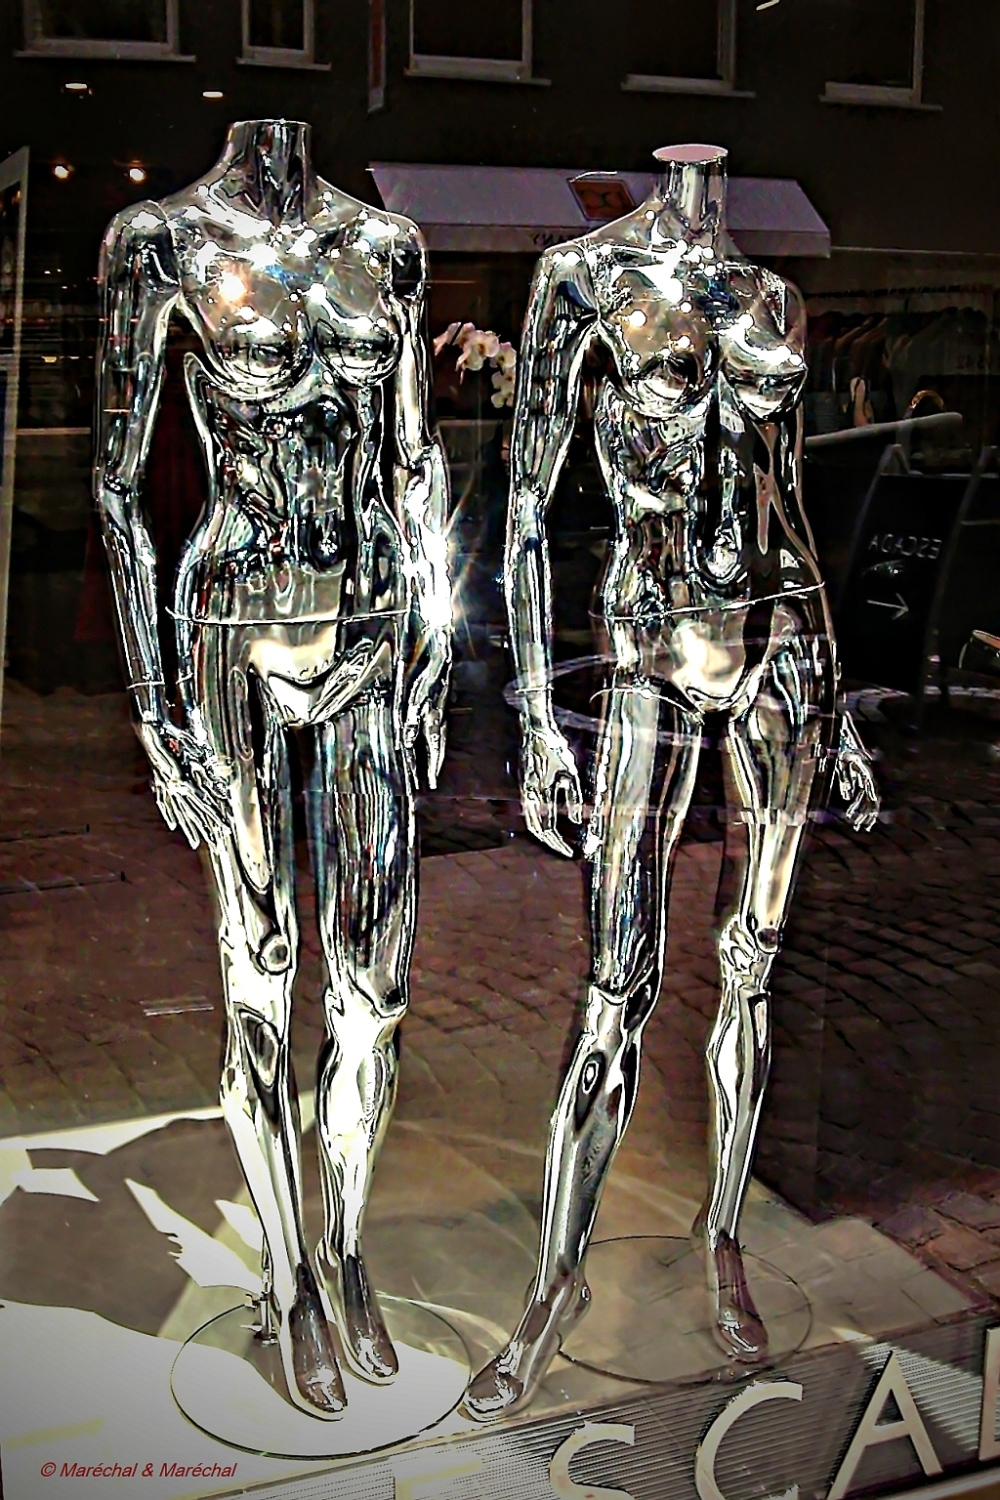 Display dummies from outer space